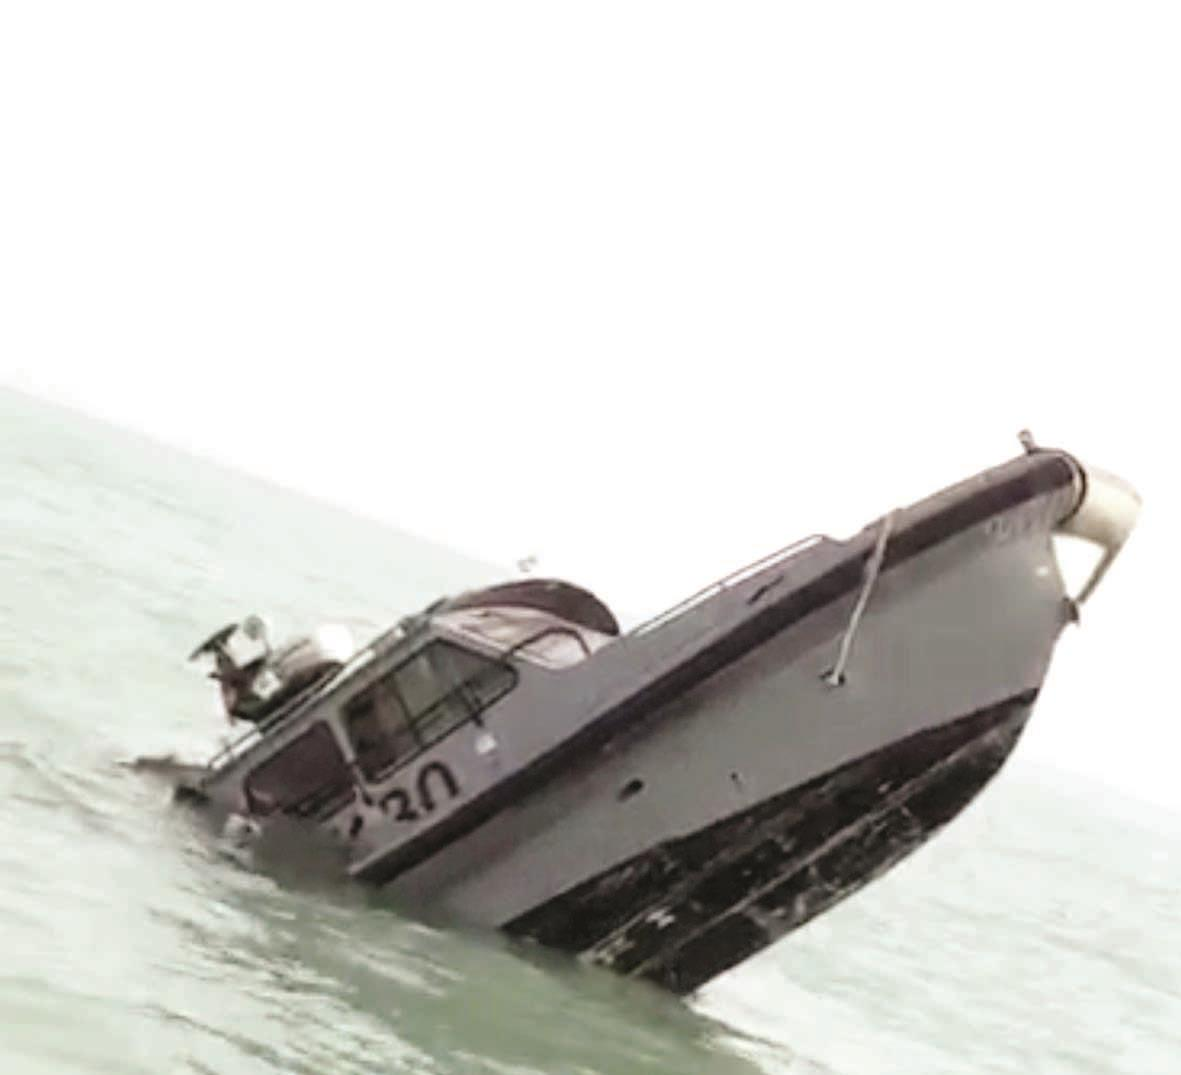 11 Kuwaiti soldiers rescued as military boat sinks